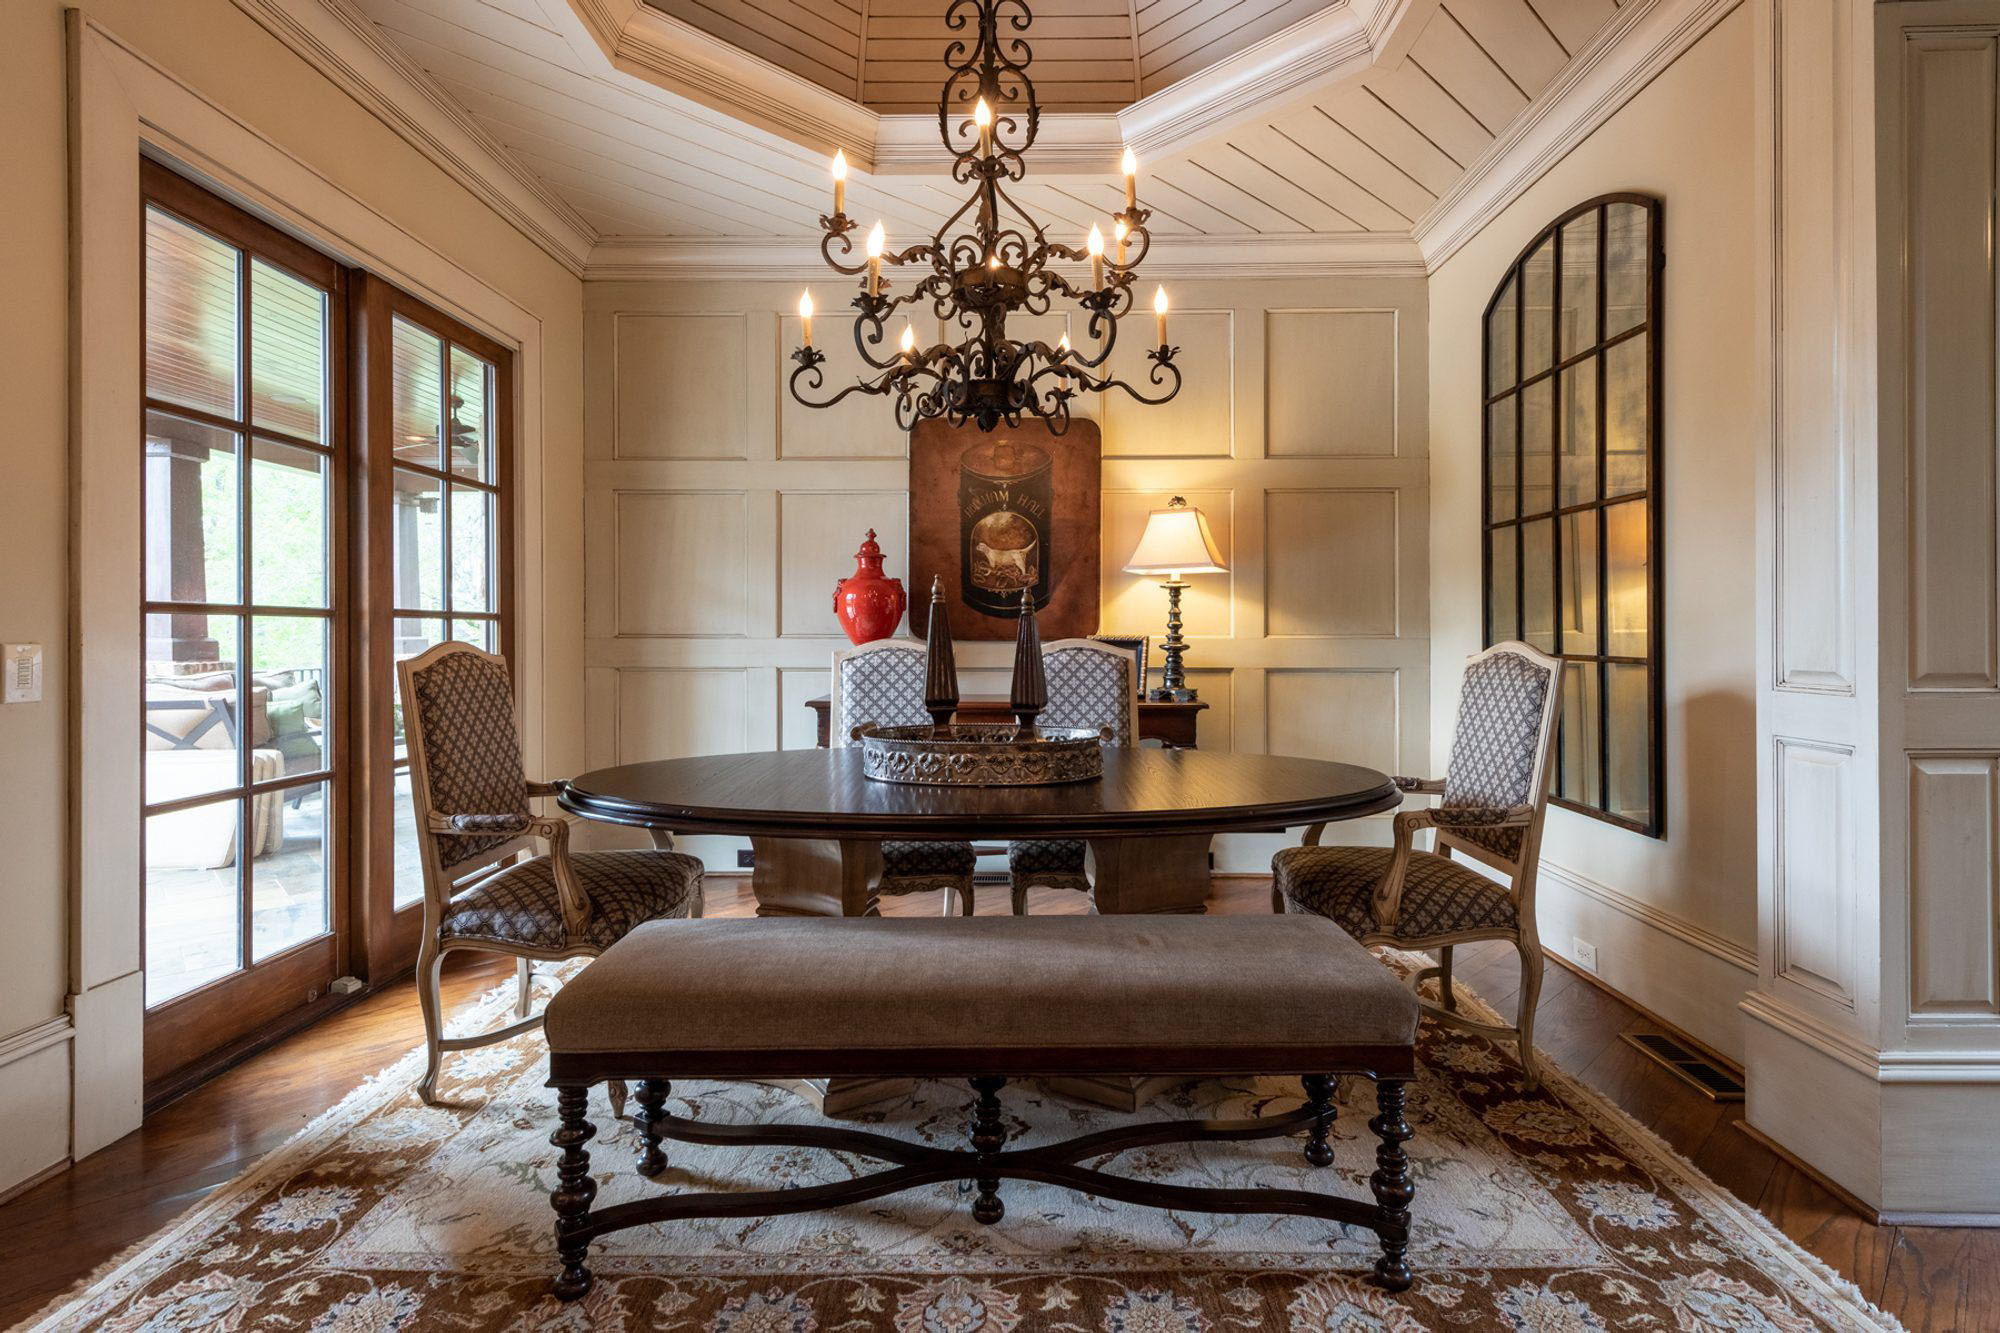 traditionally styles area rug in a dining room brown, cream and tan colors with wood furniture